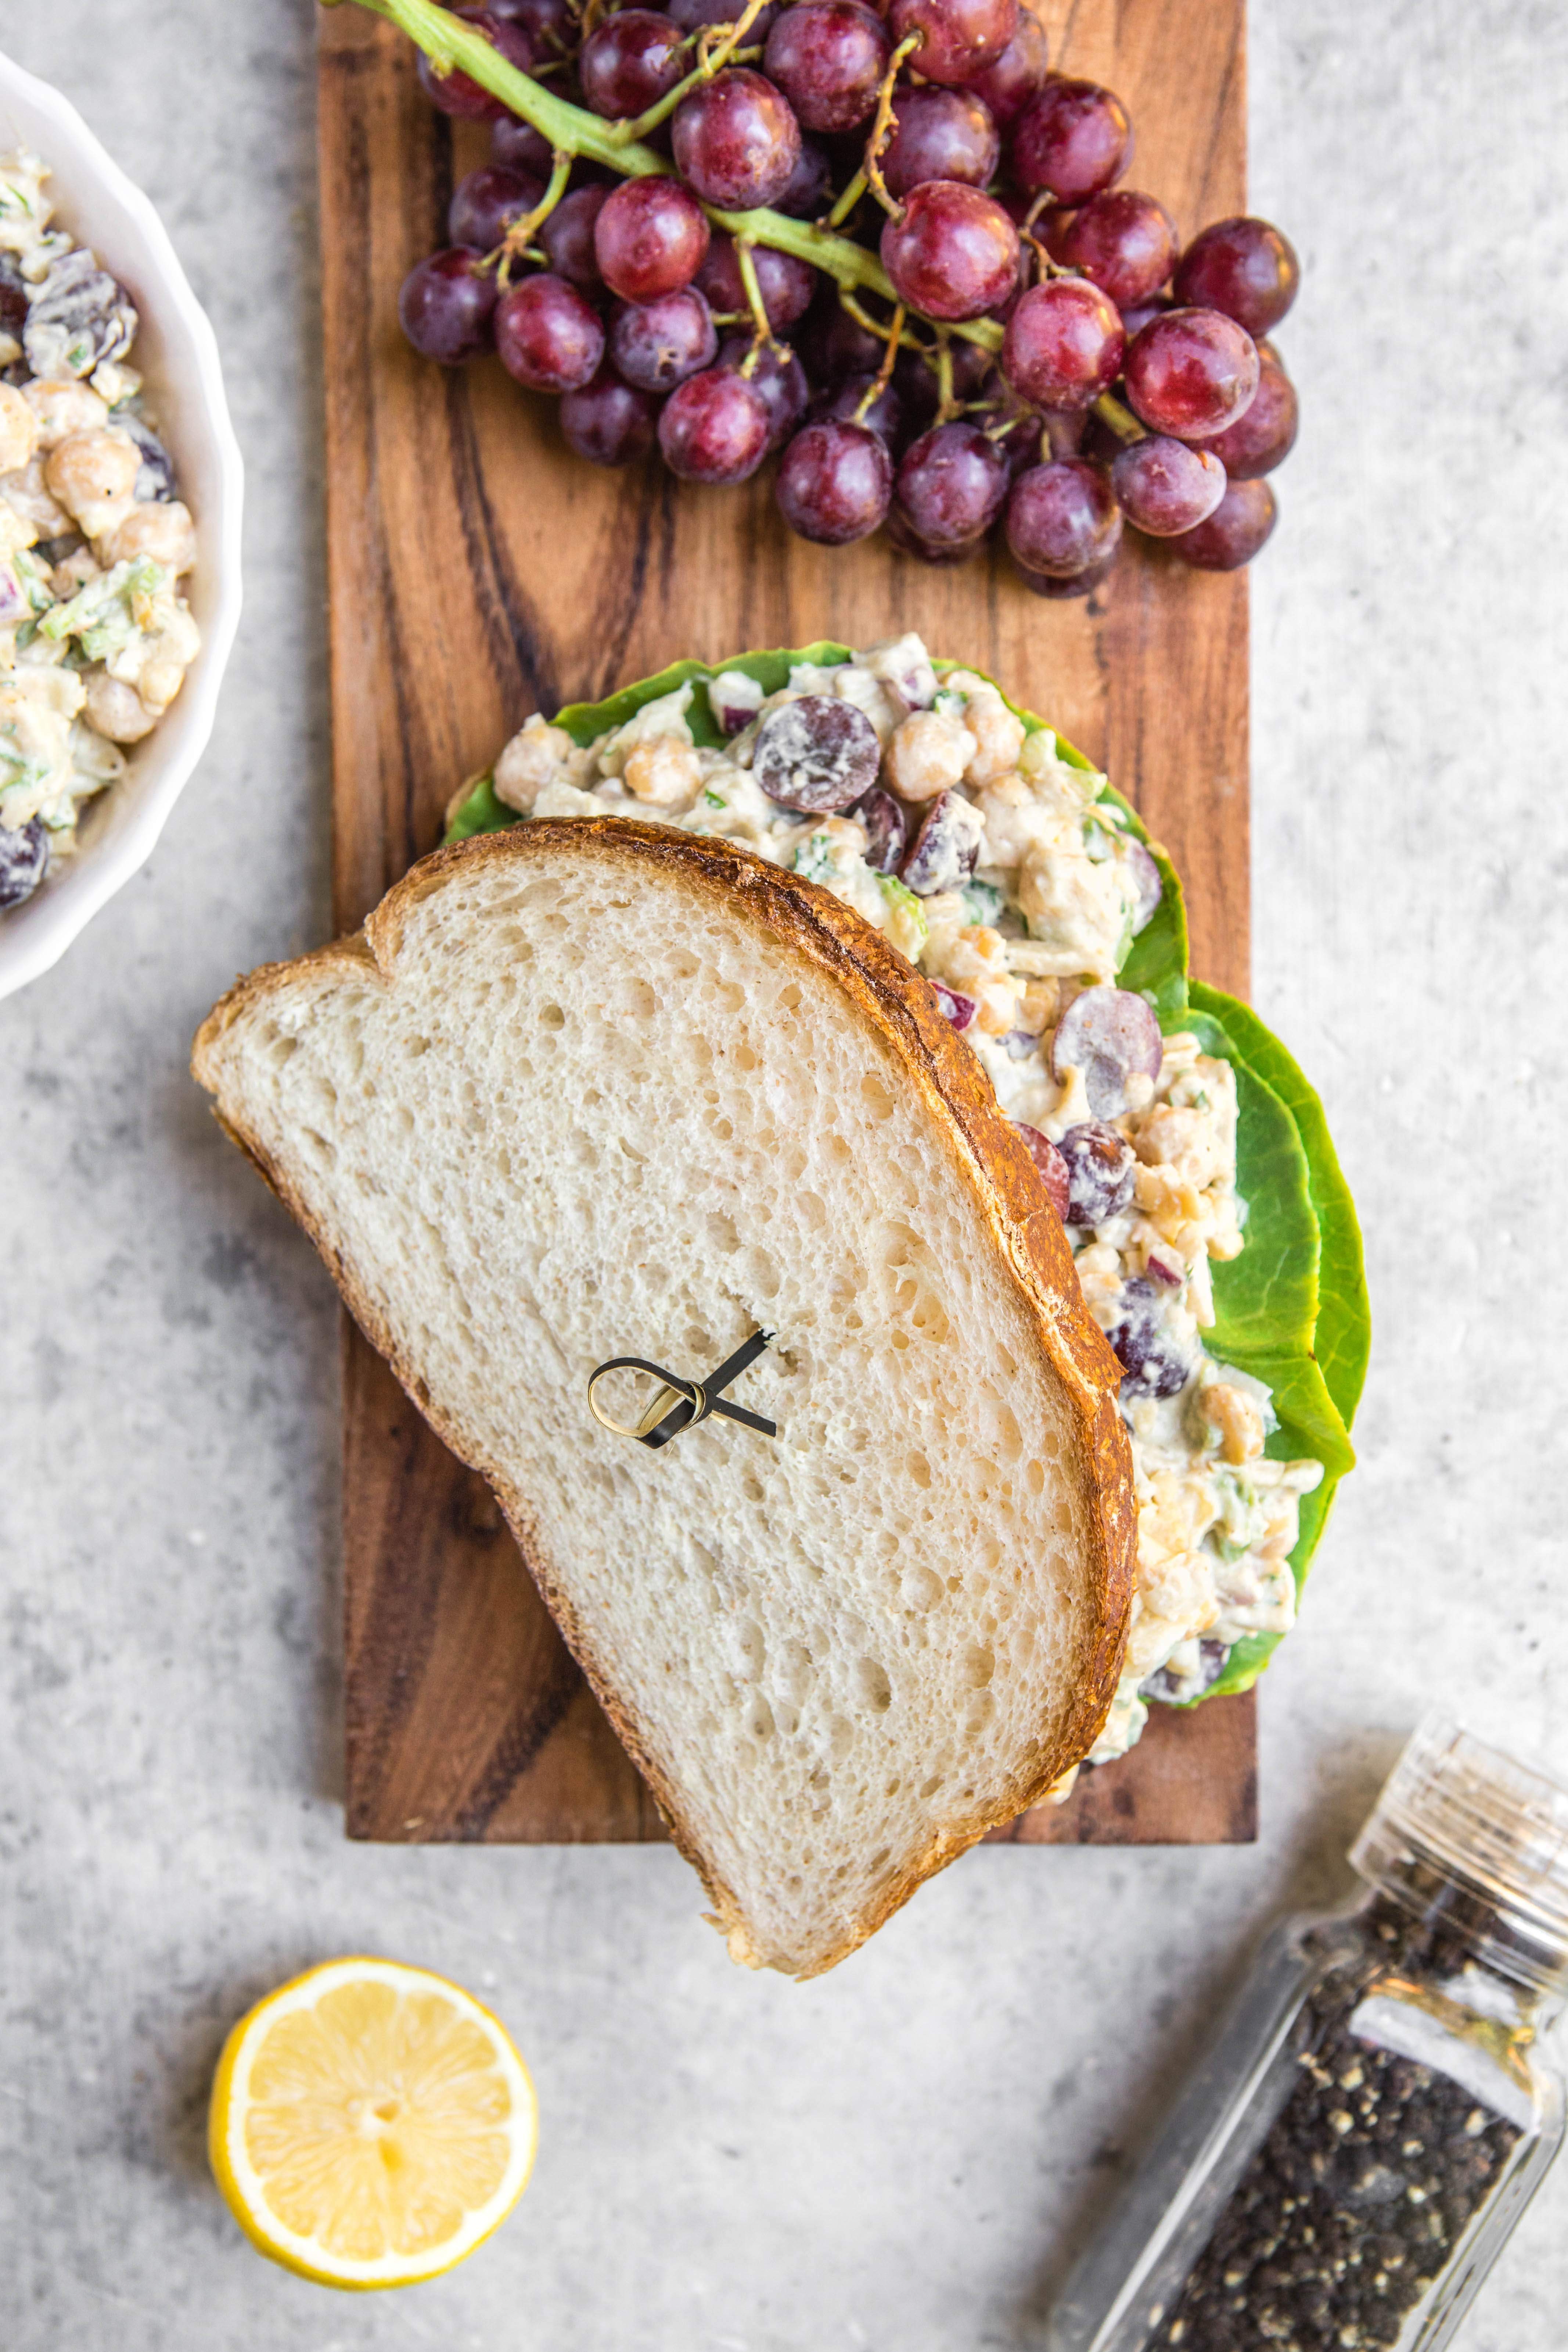 Free clipart celery with hummus and raisins on it picture download The Ultimate Chickpea Salad Sandwich picture download